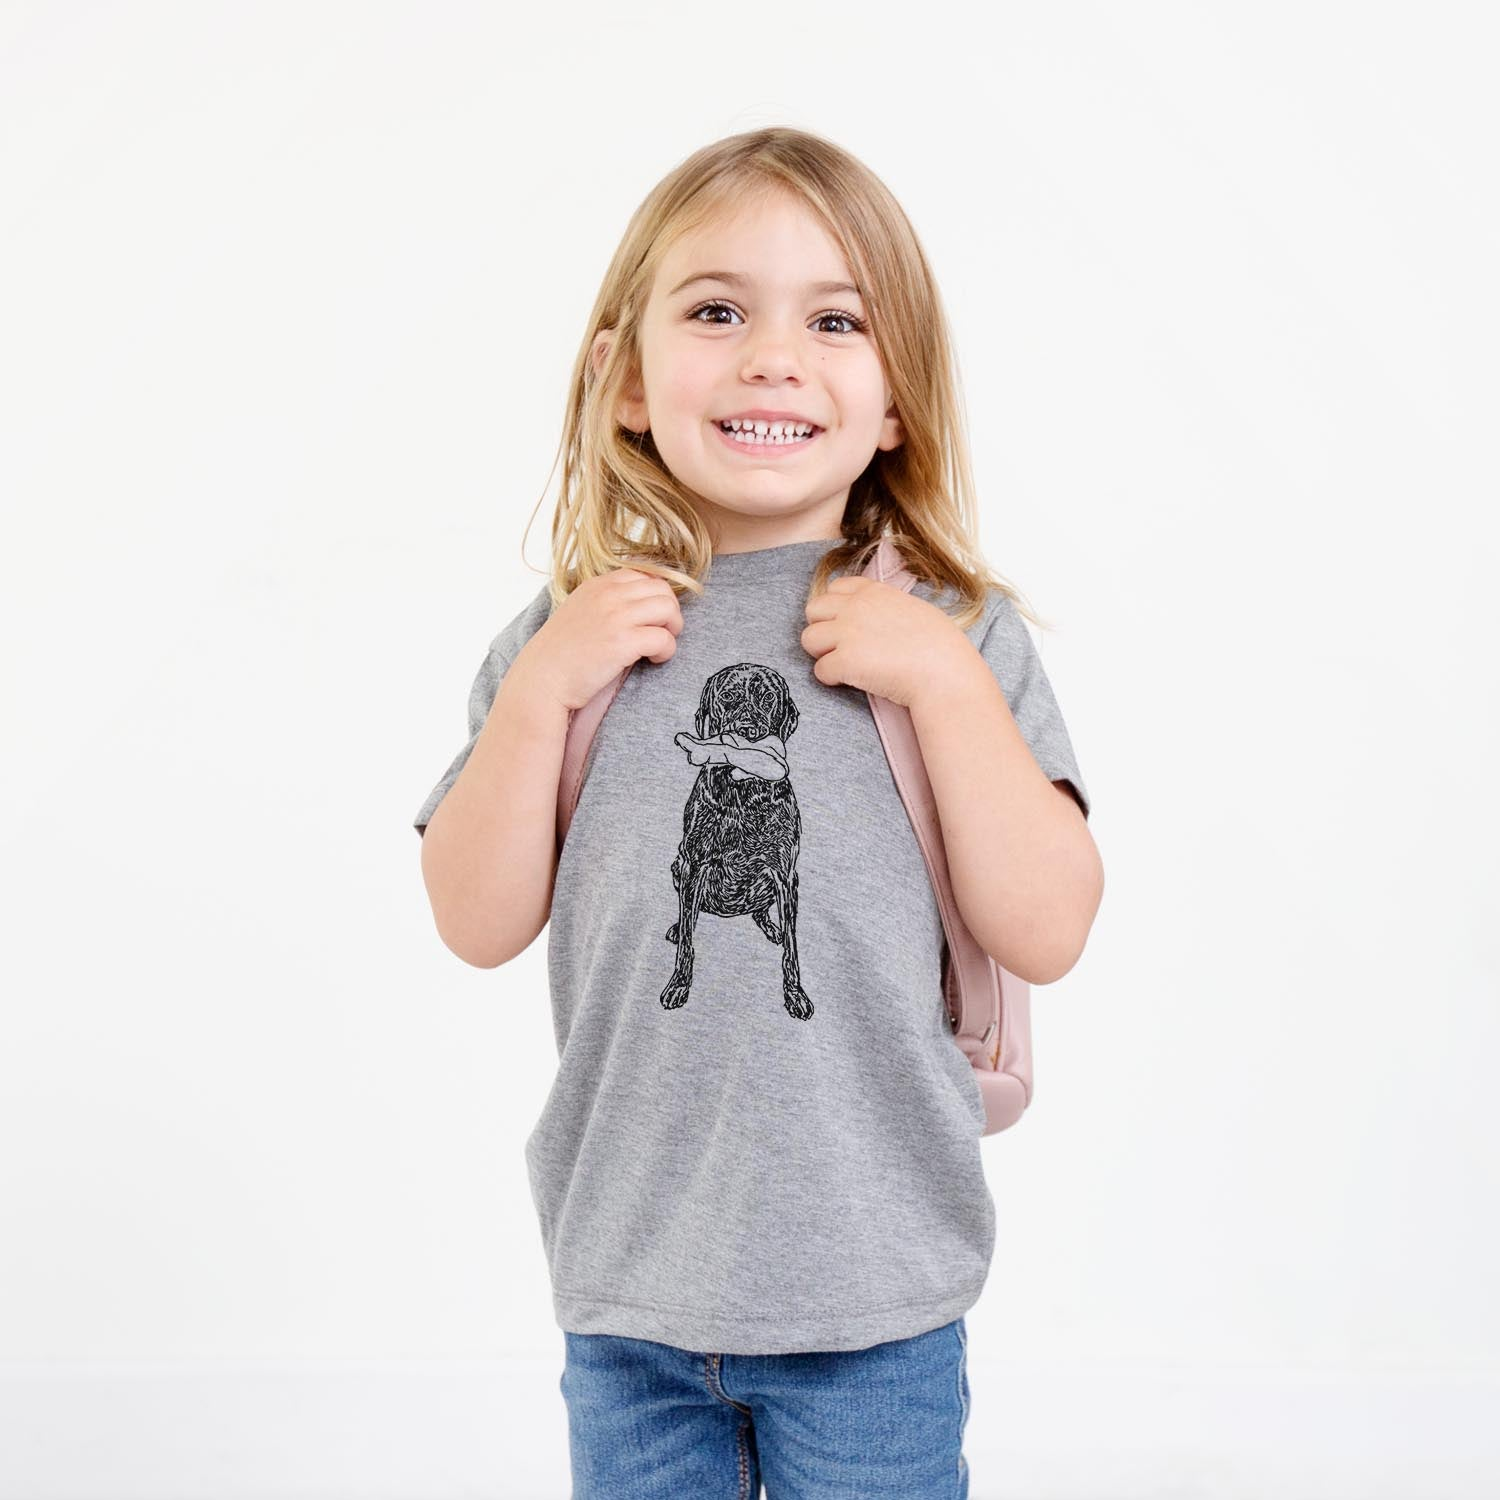 Doodled Lucy the Mixed Breed - Kids/Youth/Toddler Shirt